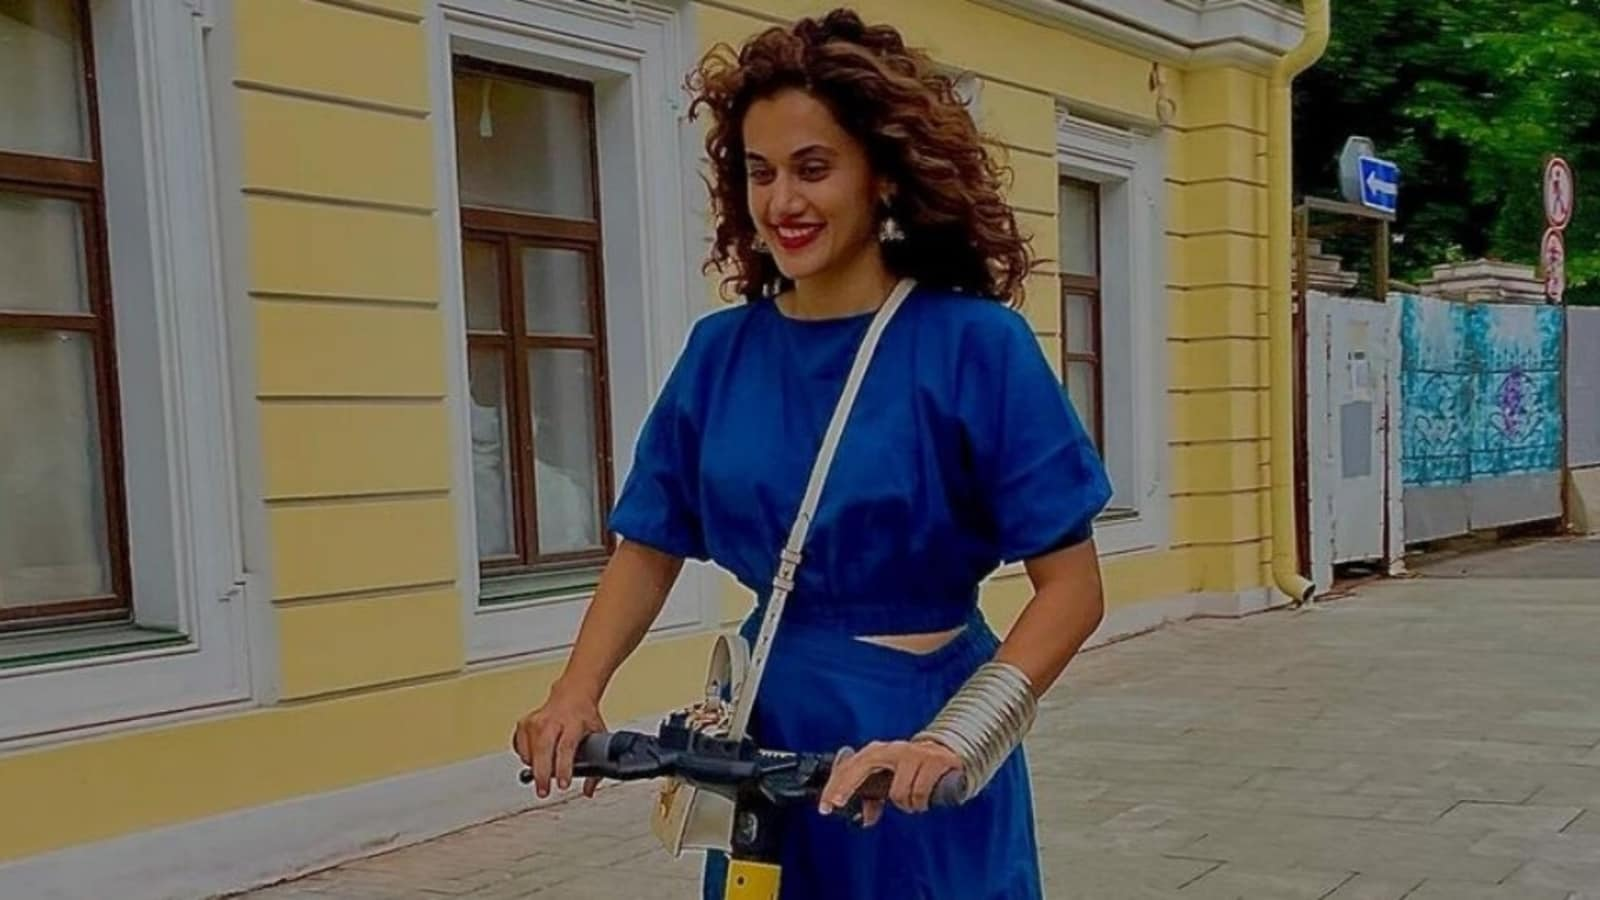 Taapsee Pannu provides boho vibes to ₹10k crop prime and harem pants on Moscow journey